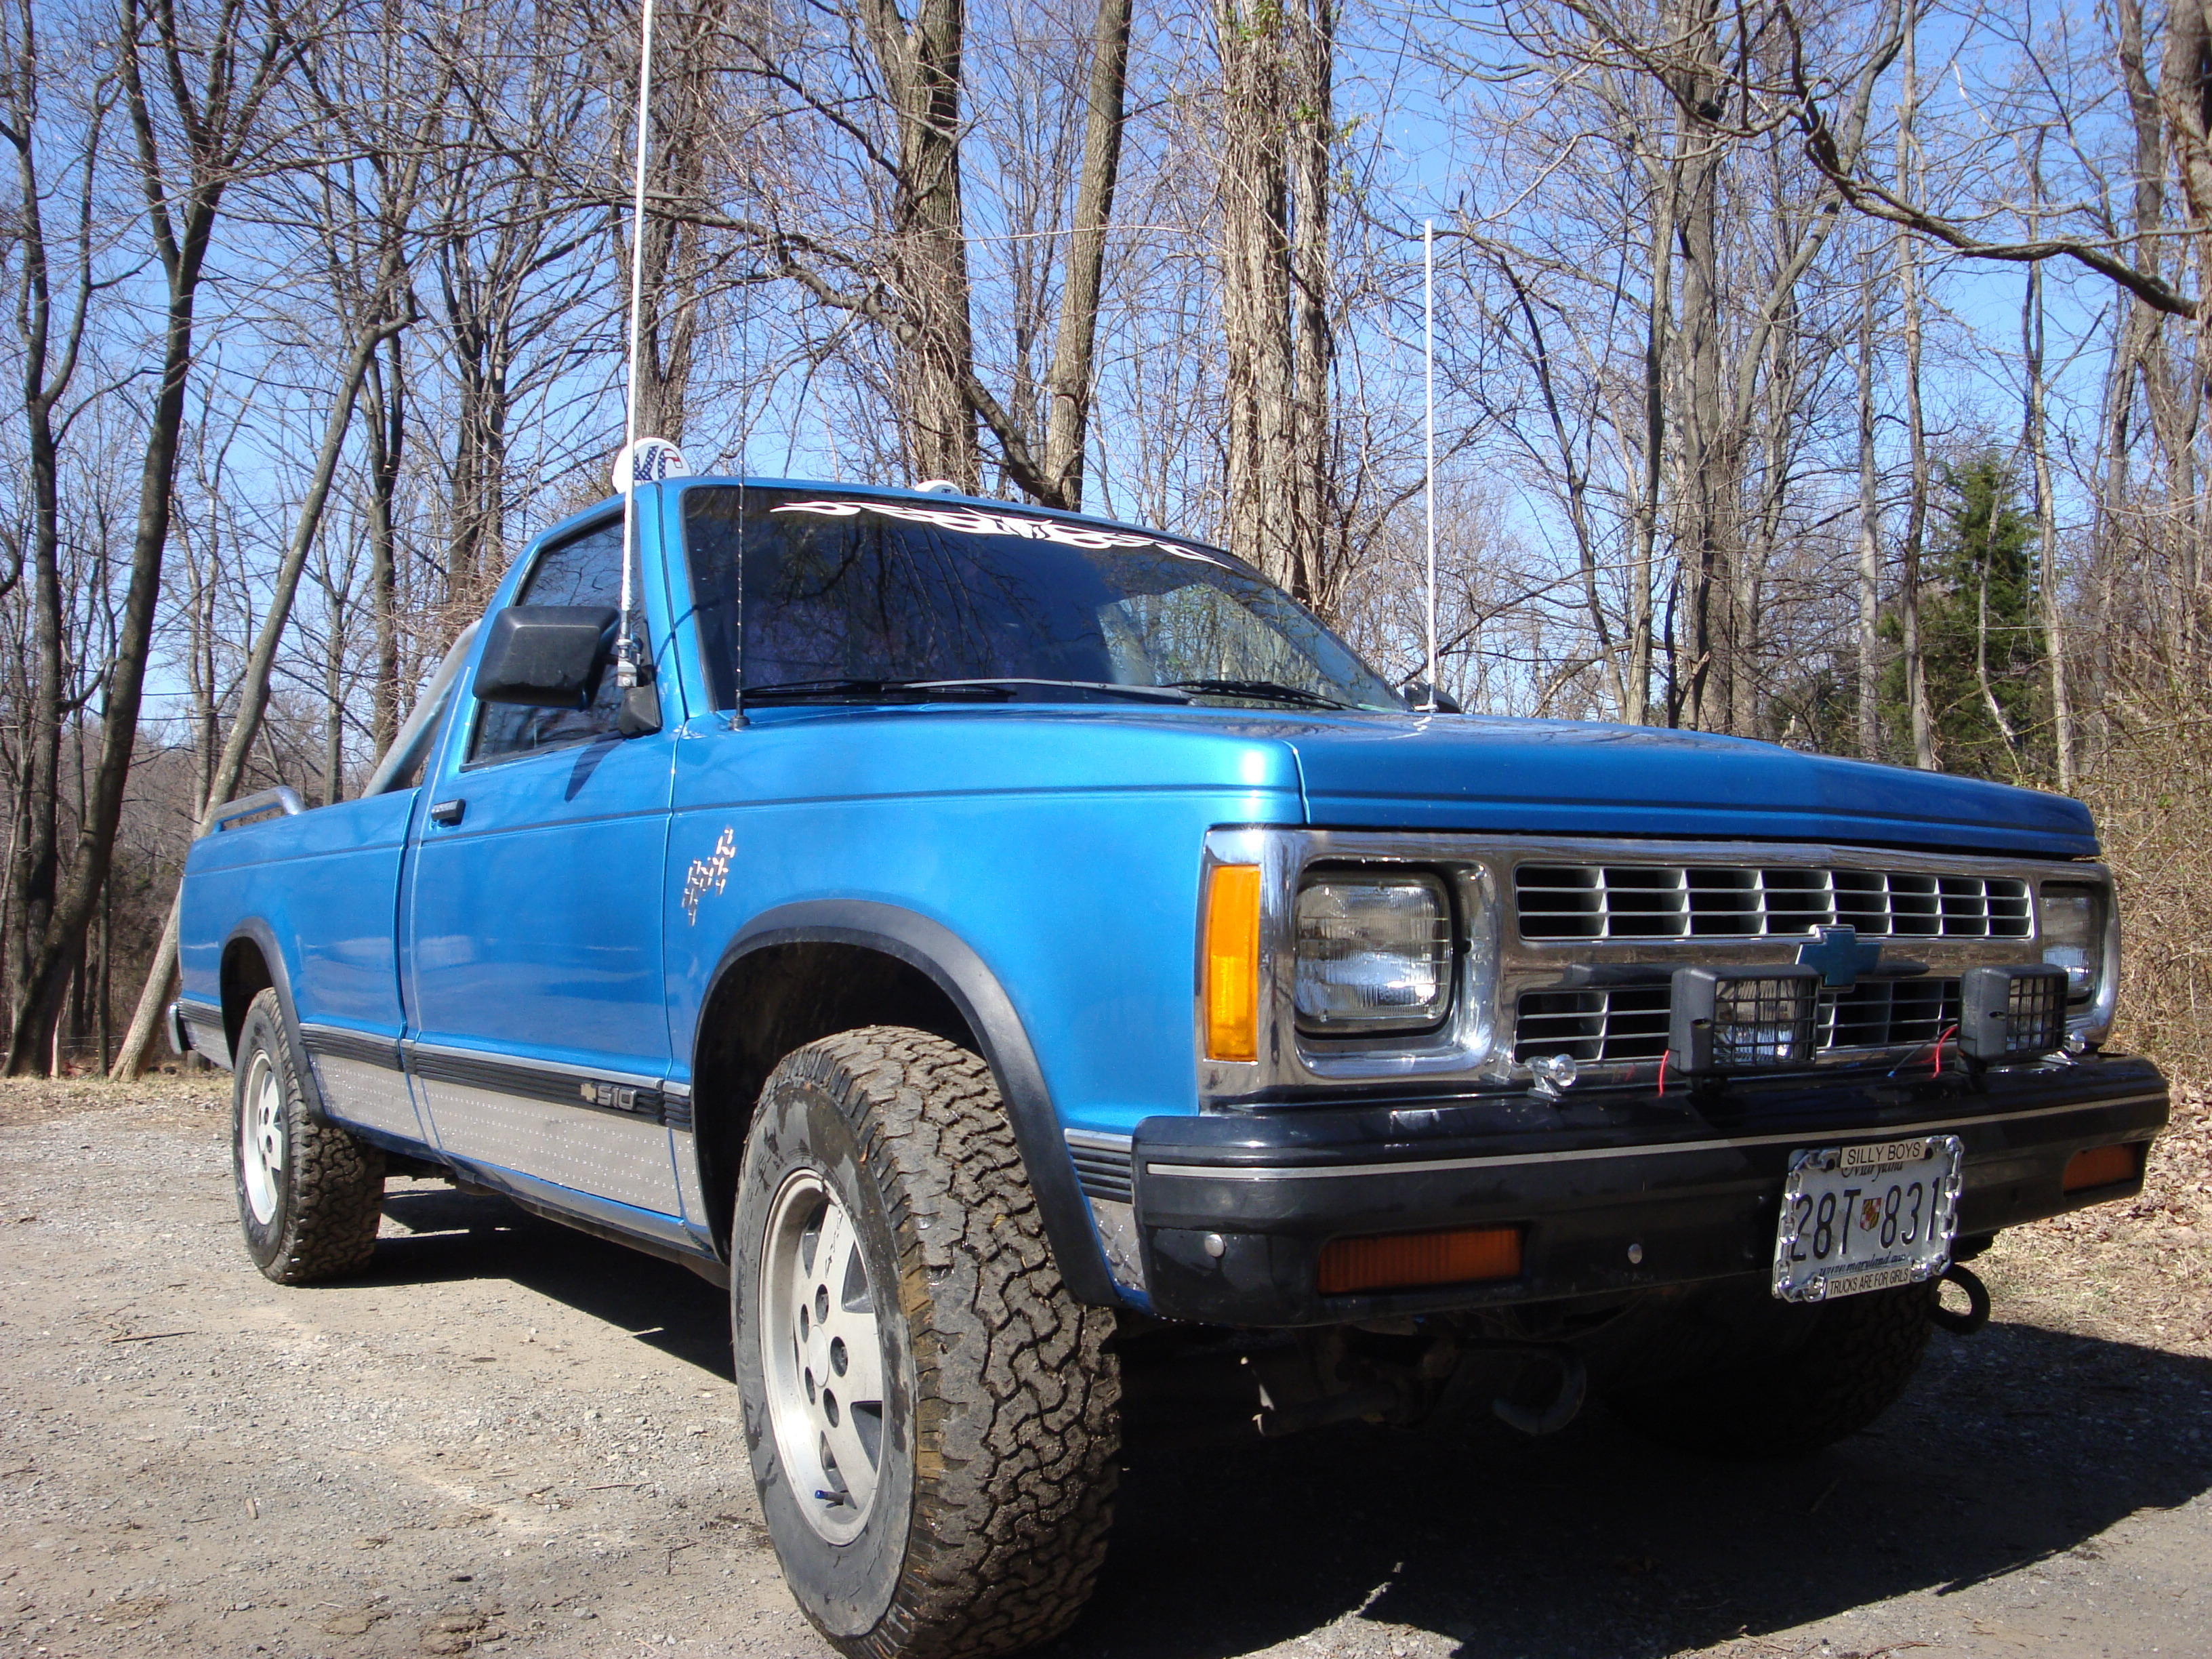 dixie_4x4 1991 Chevrolet S10 Regular Cab